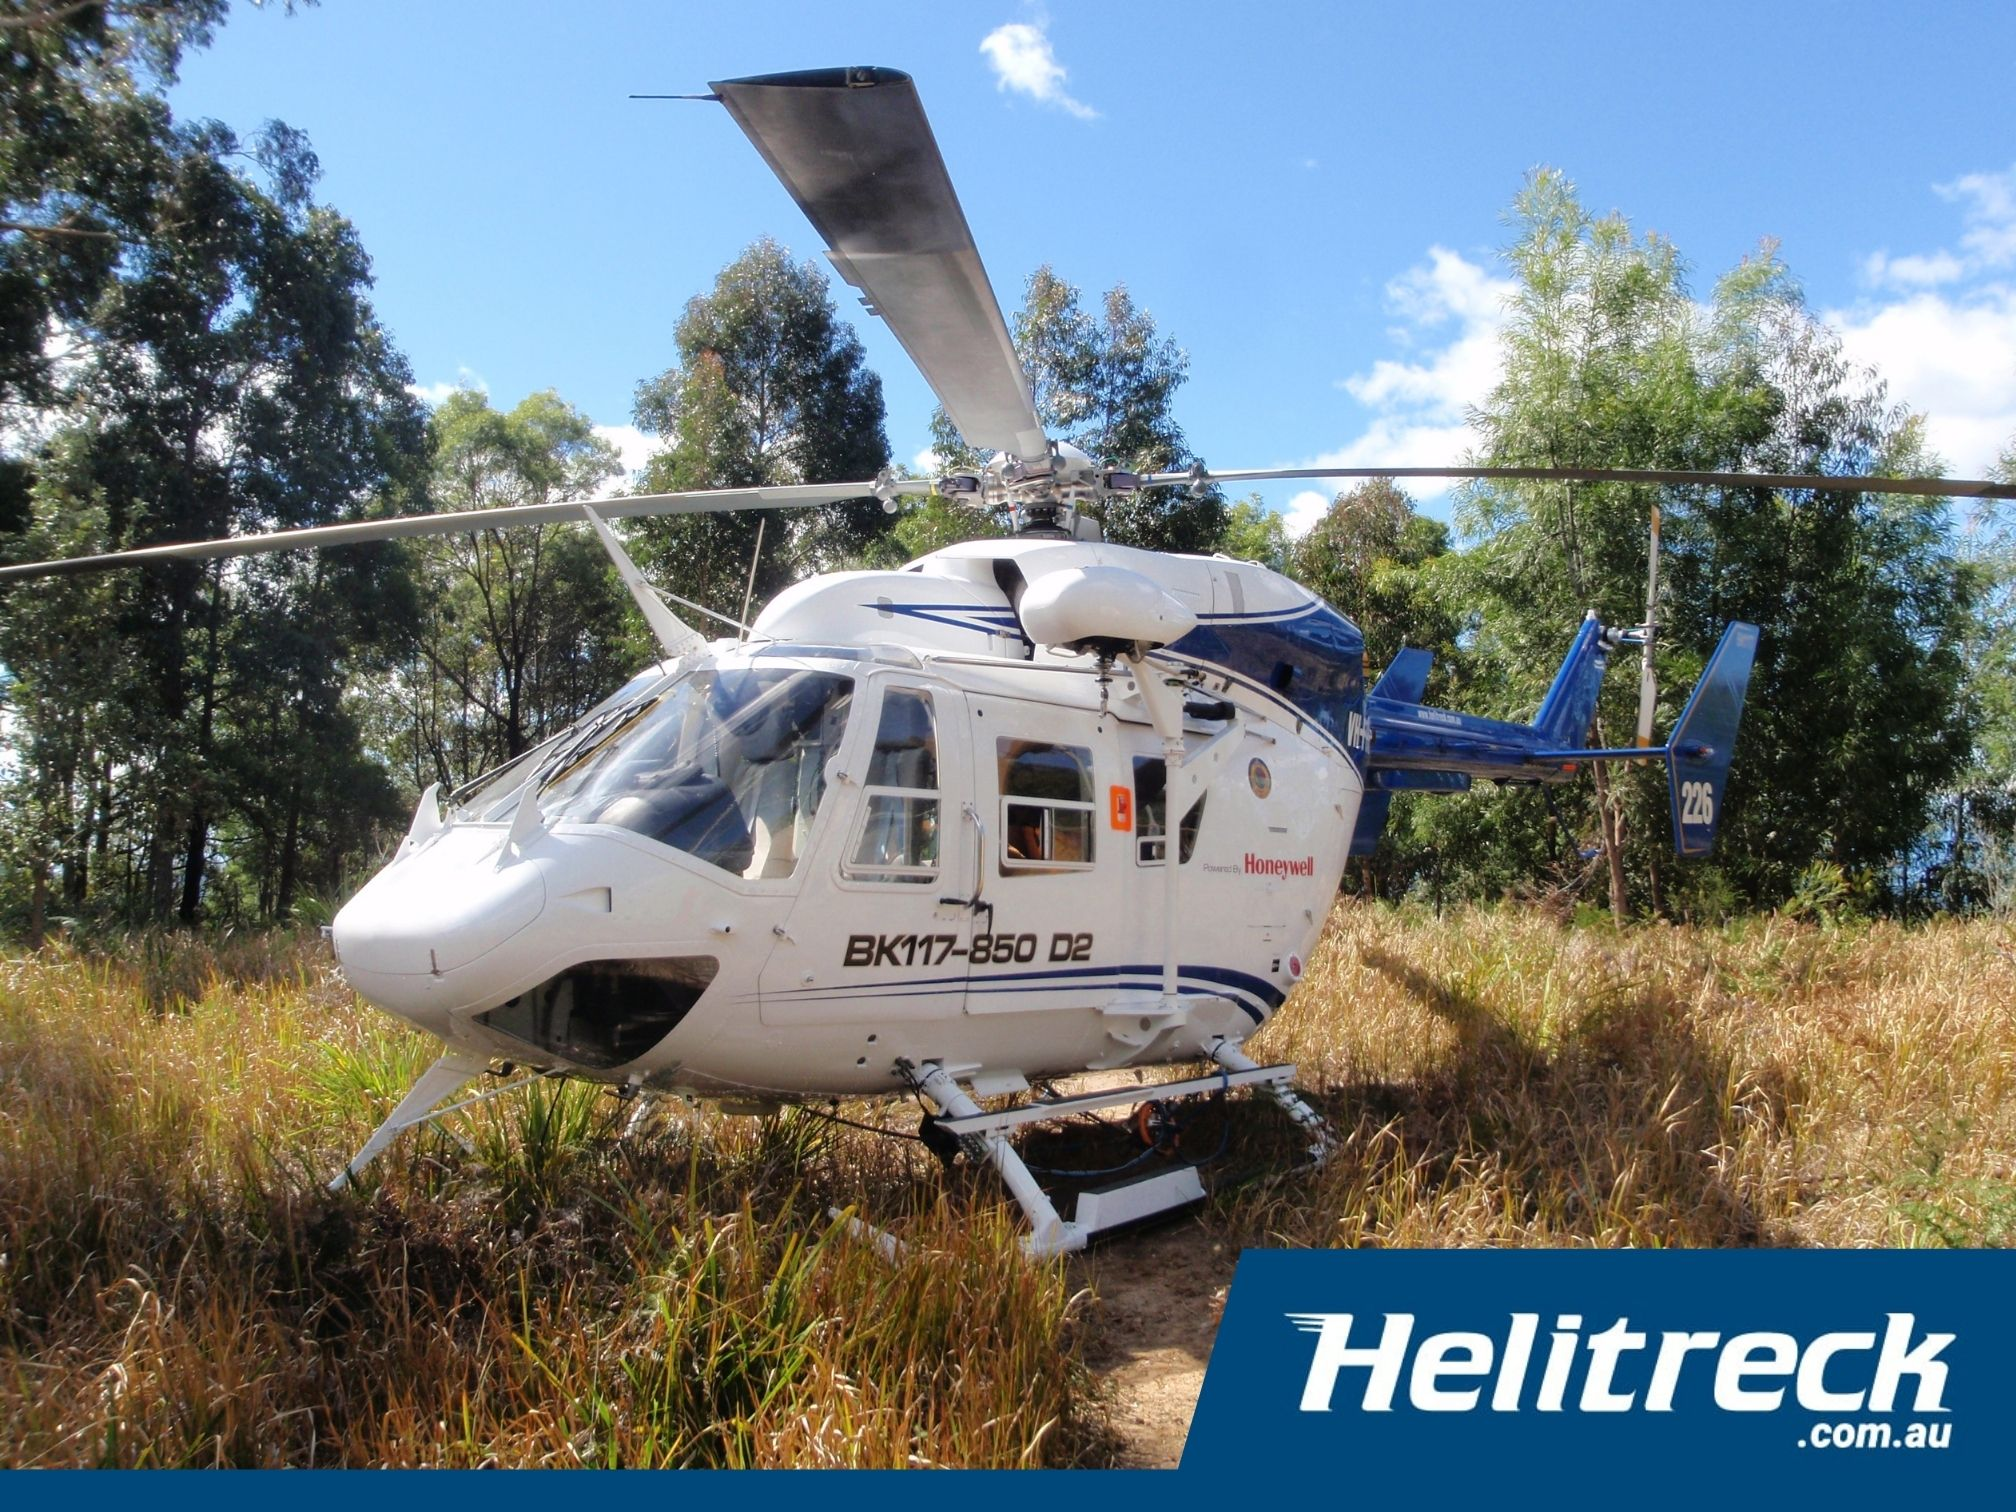 Helicopter-BK117-B2-VH-FHF-12